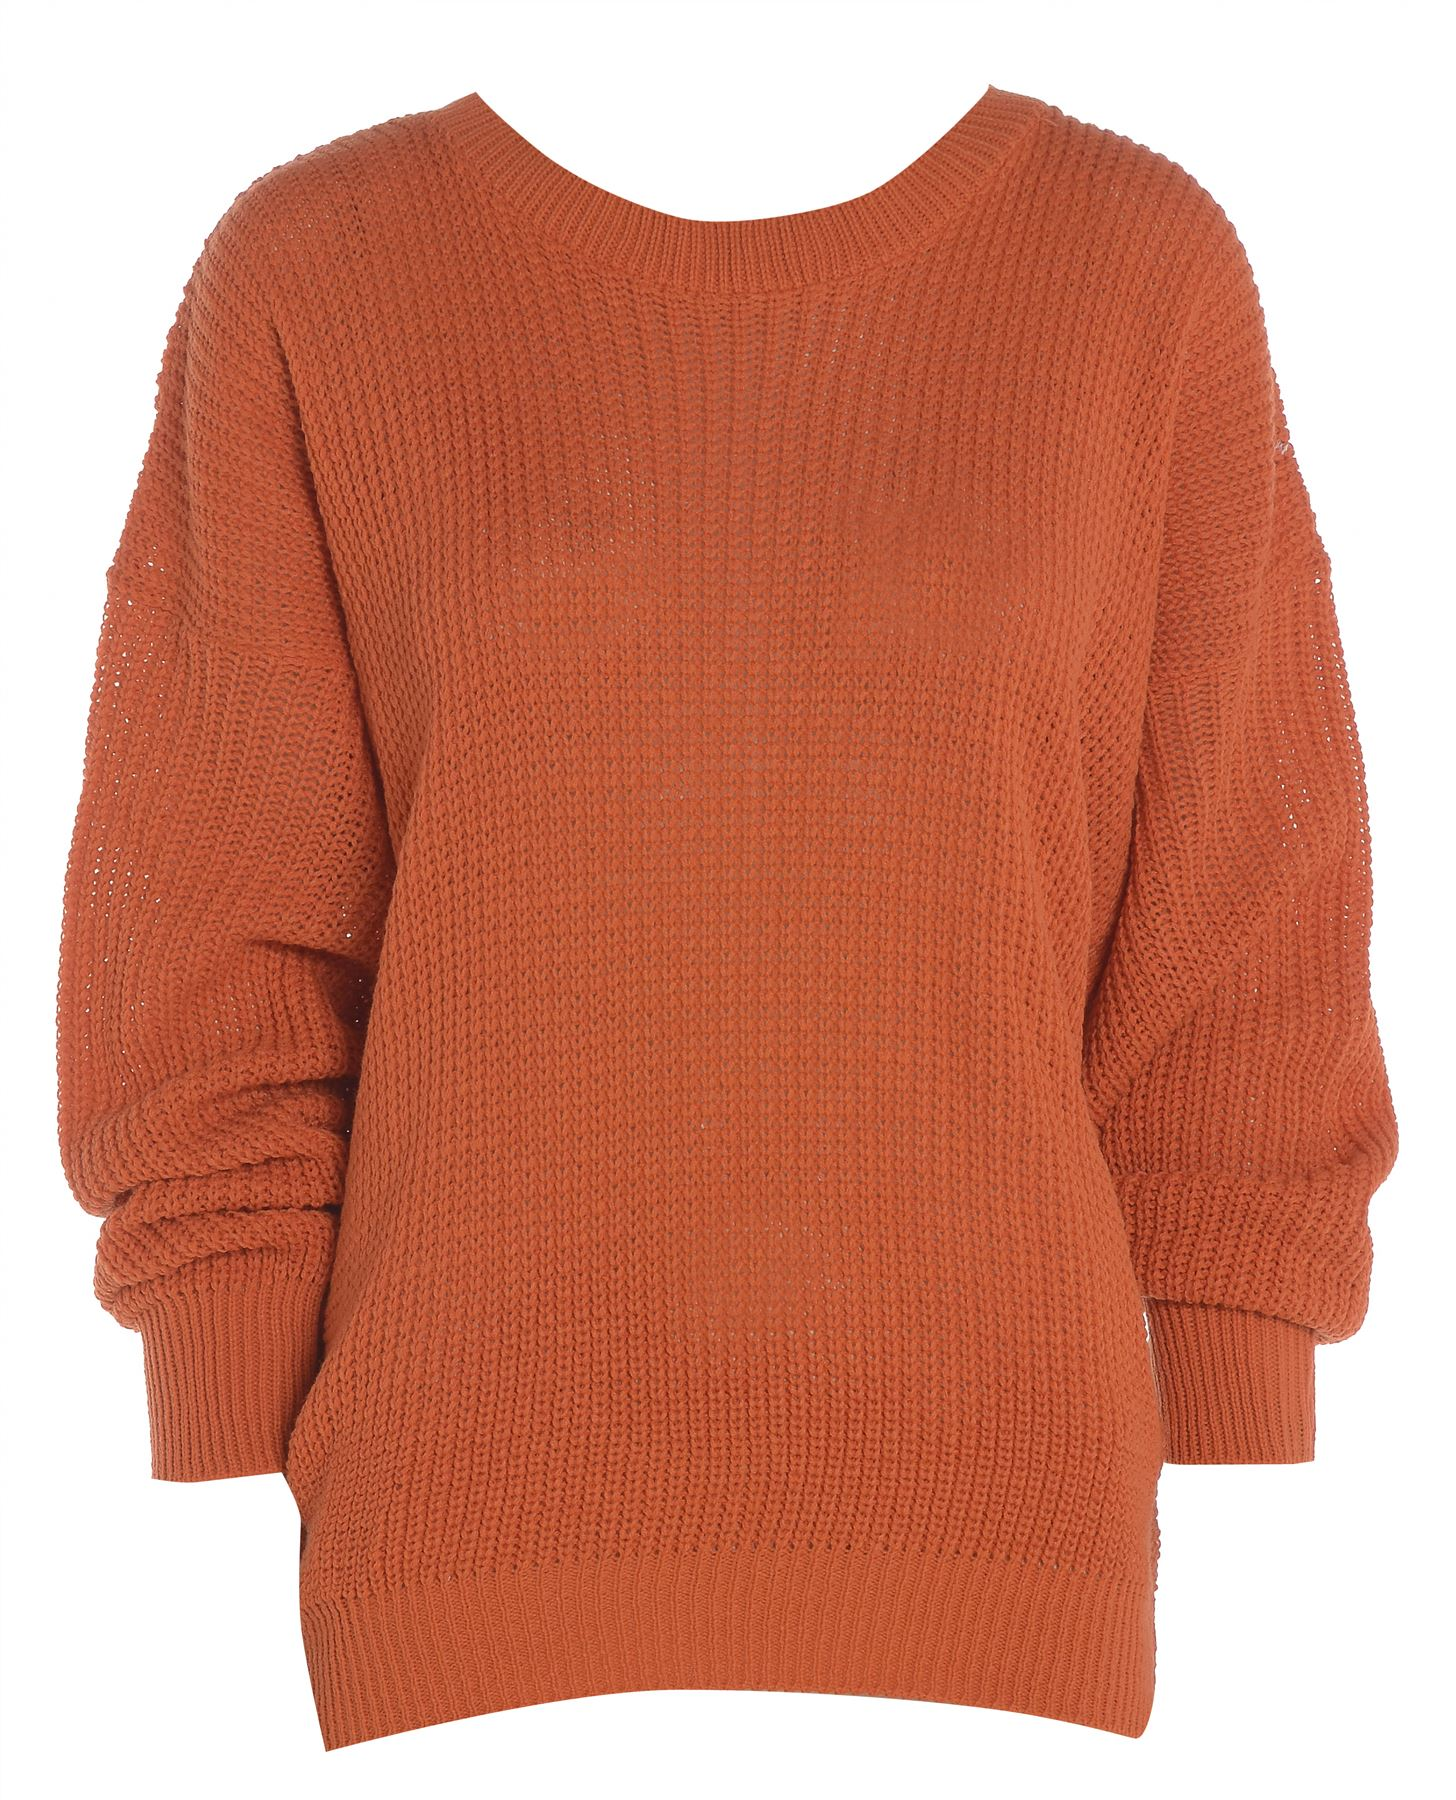 Find great deals on eBay for baggy jumpers. Shop with confidence.